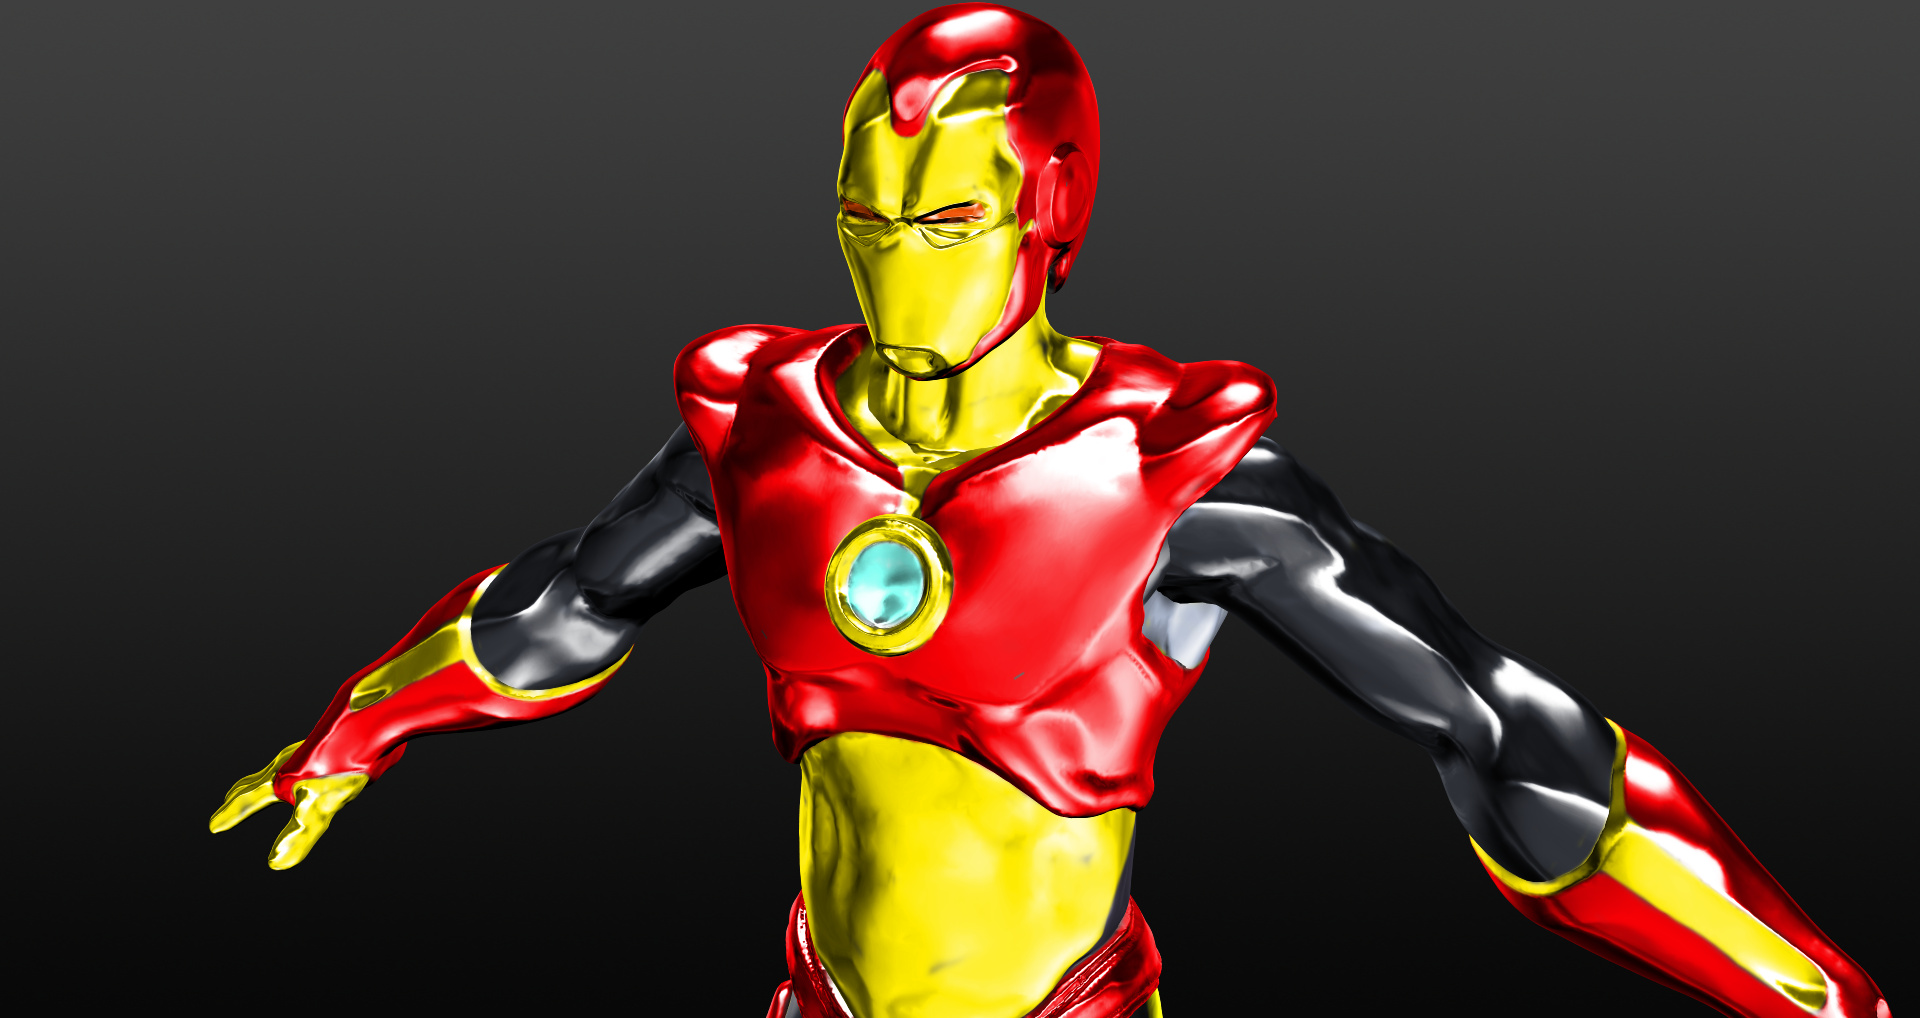 Ironman_Prova24_color3quater_center_sidebig1